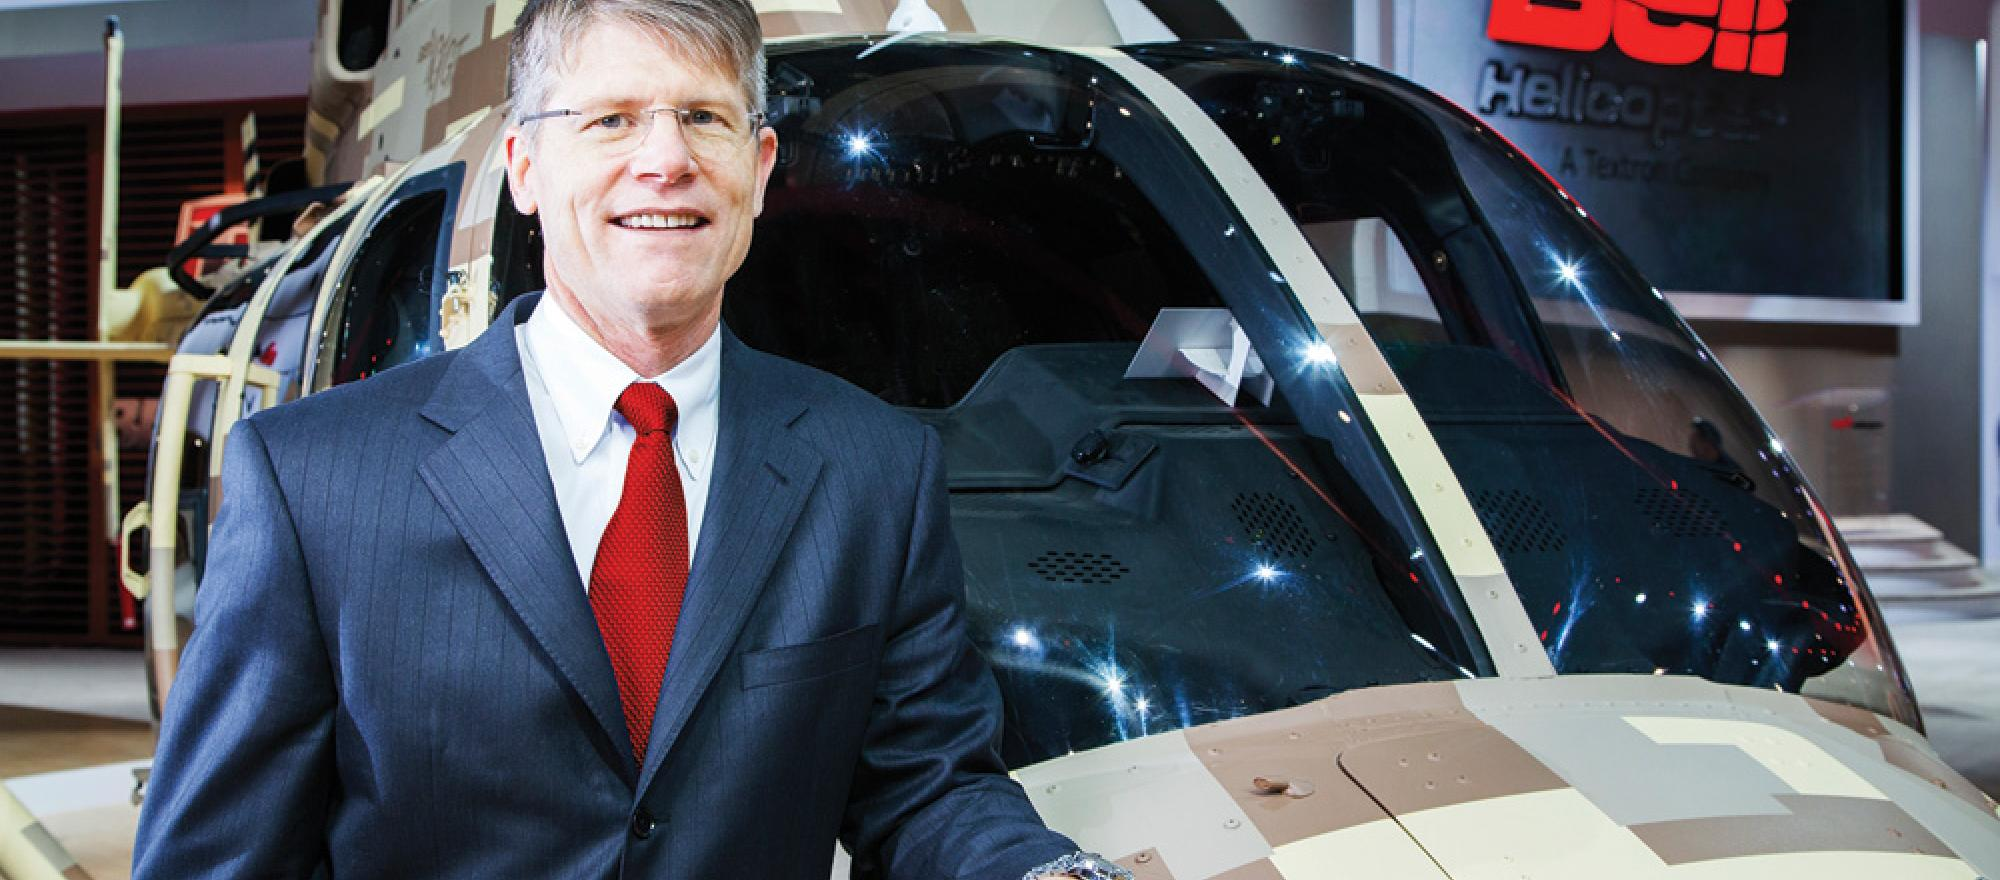 Bell Helicopter President and CEO, John L. Garrison, Jr. (Photo: Bell Helicopter)